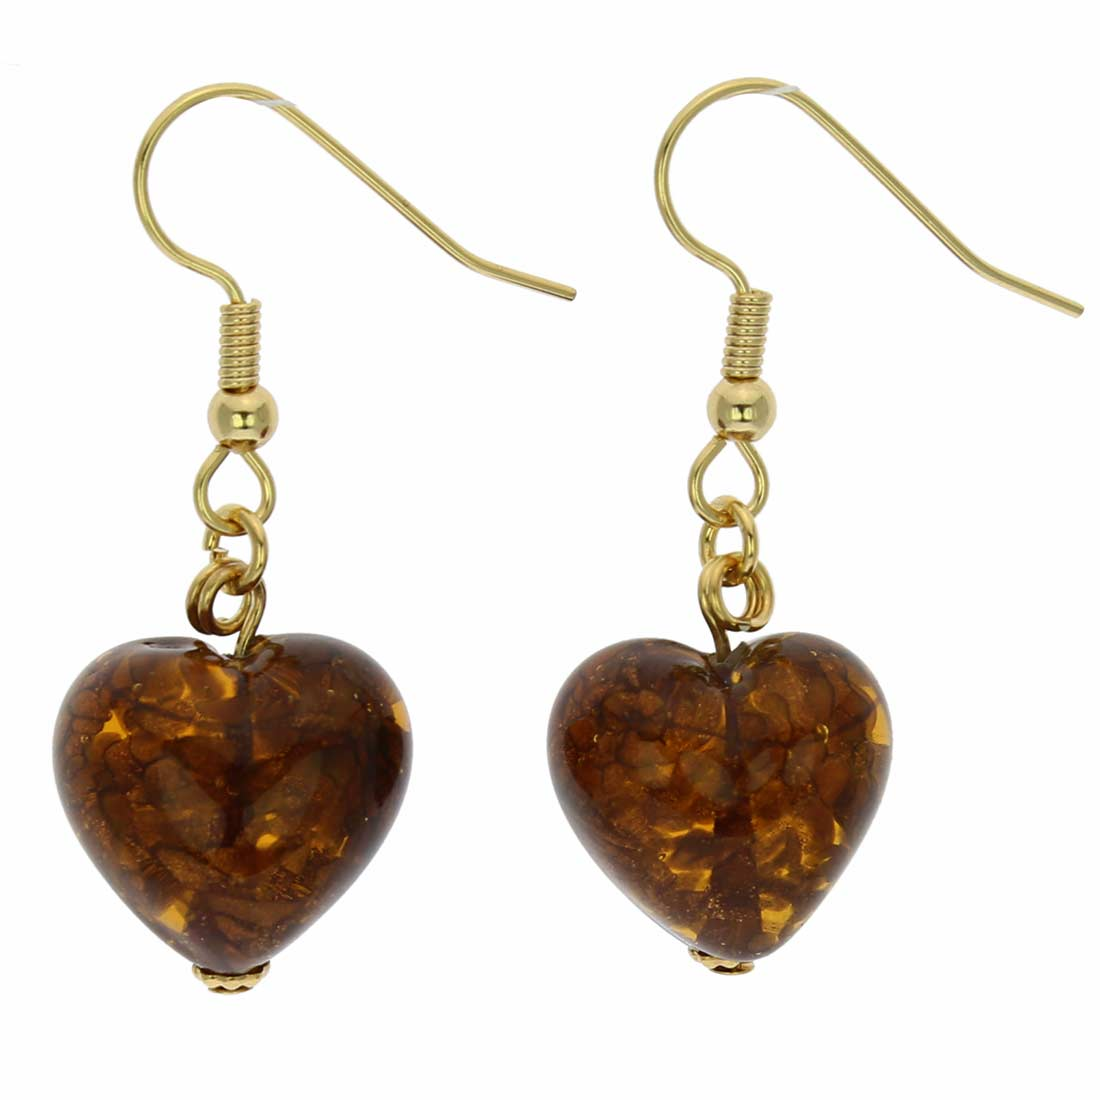 Starlight Hearts earrings - topaz